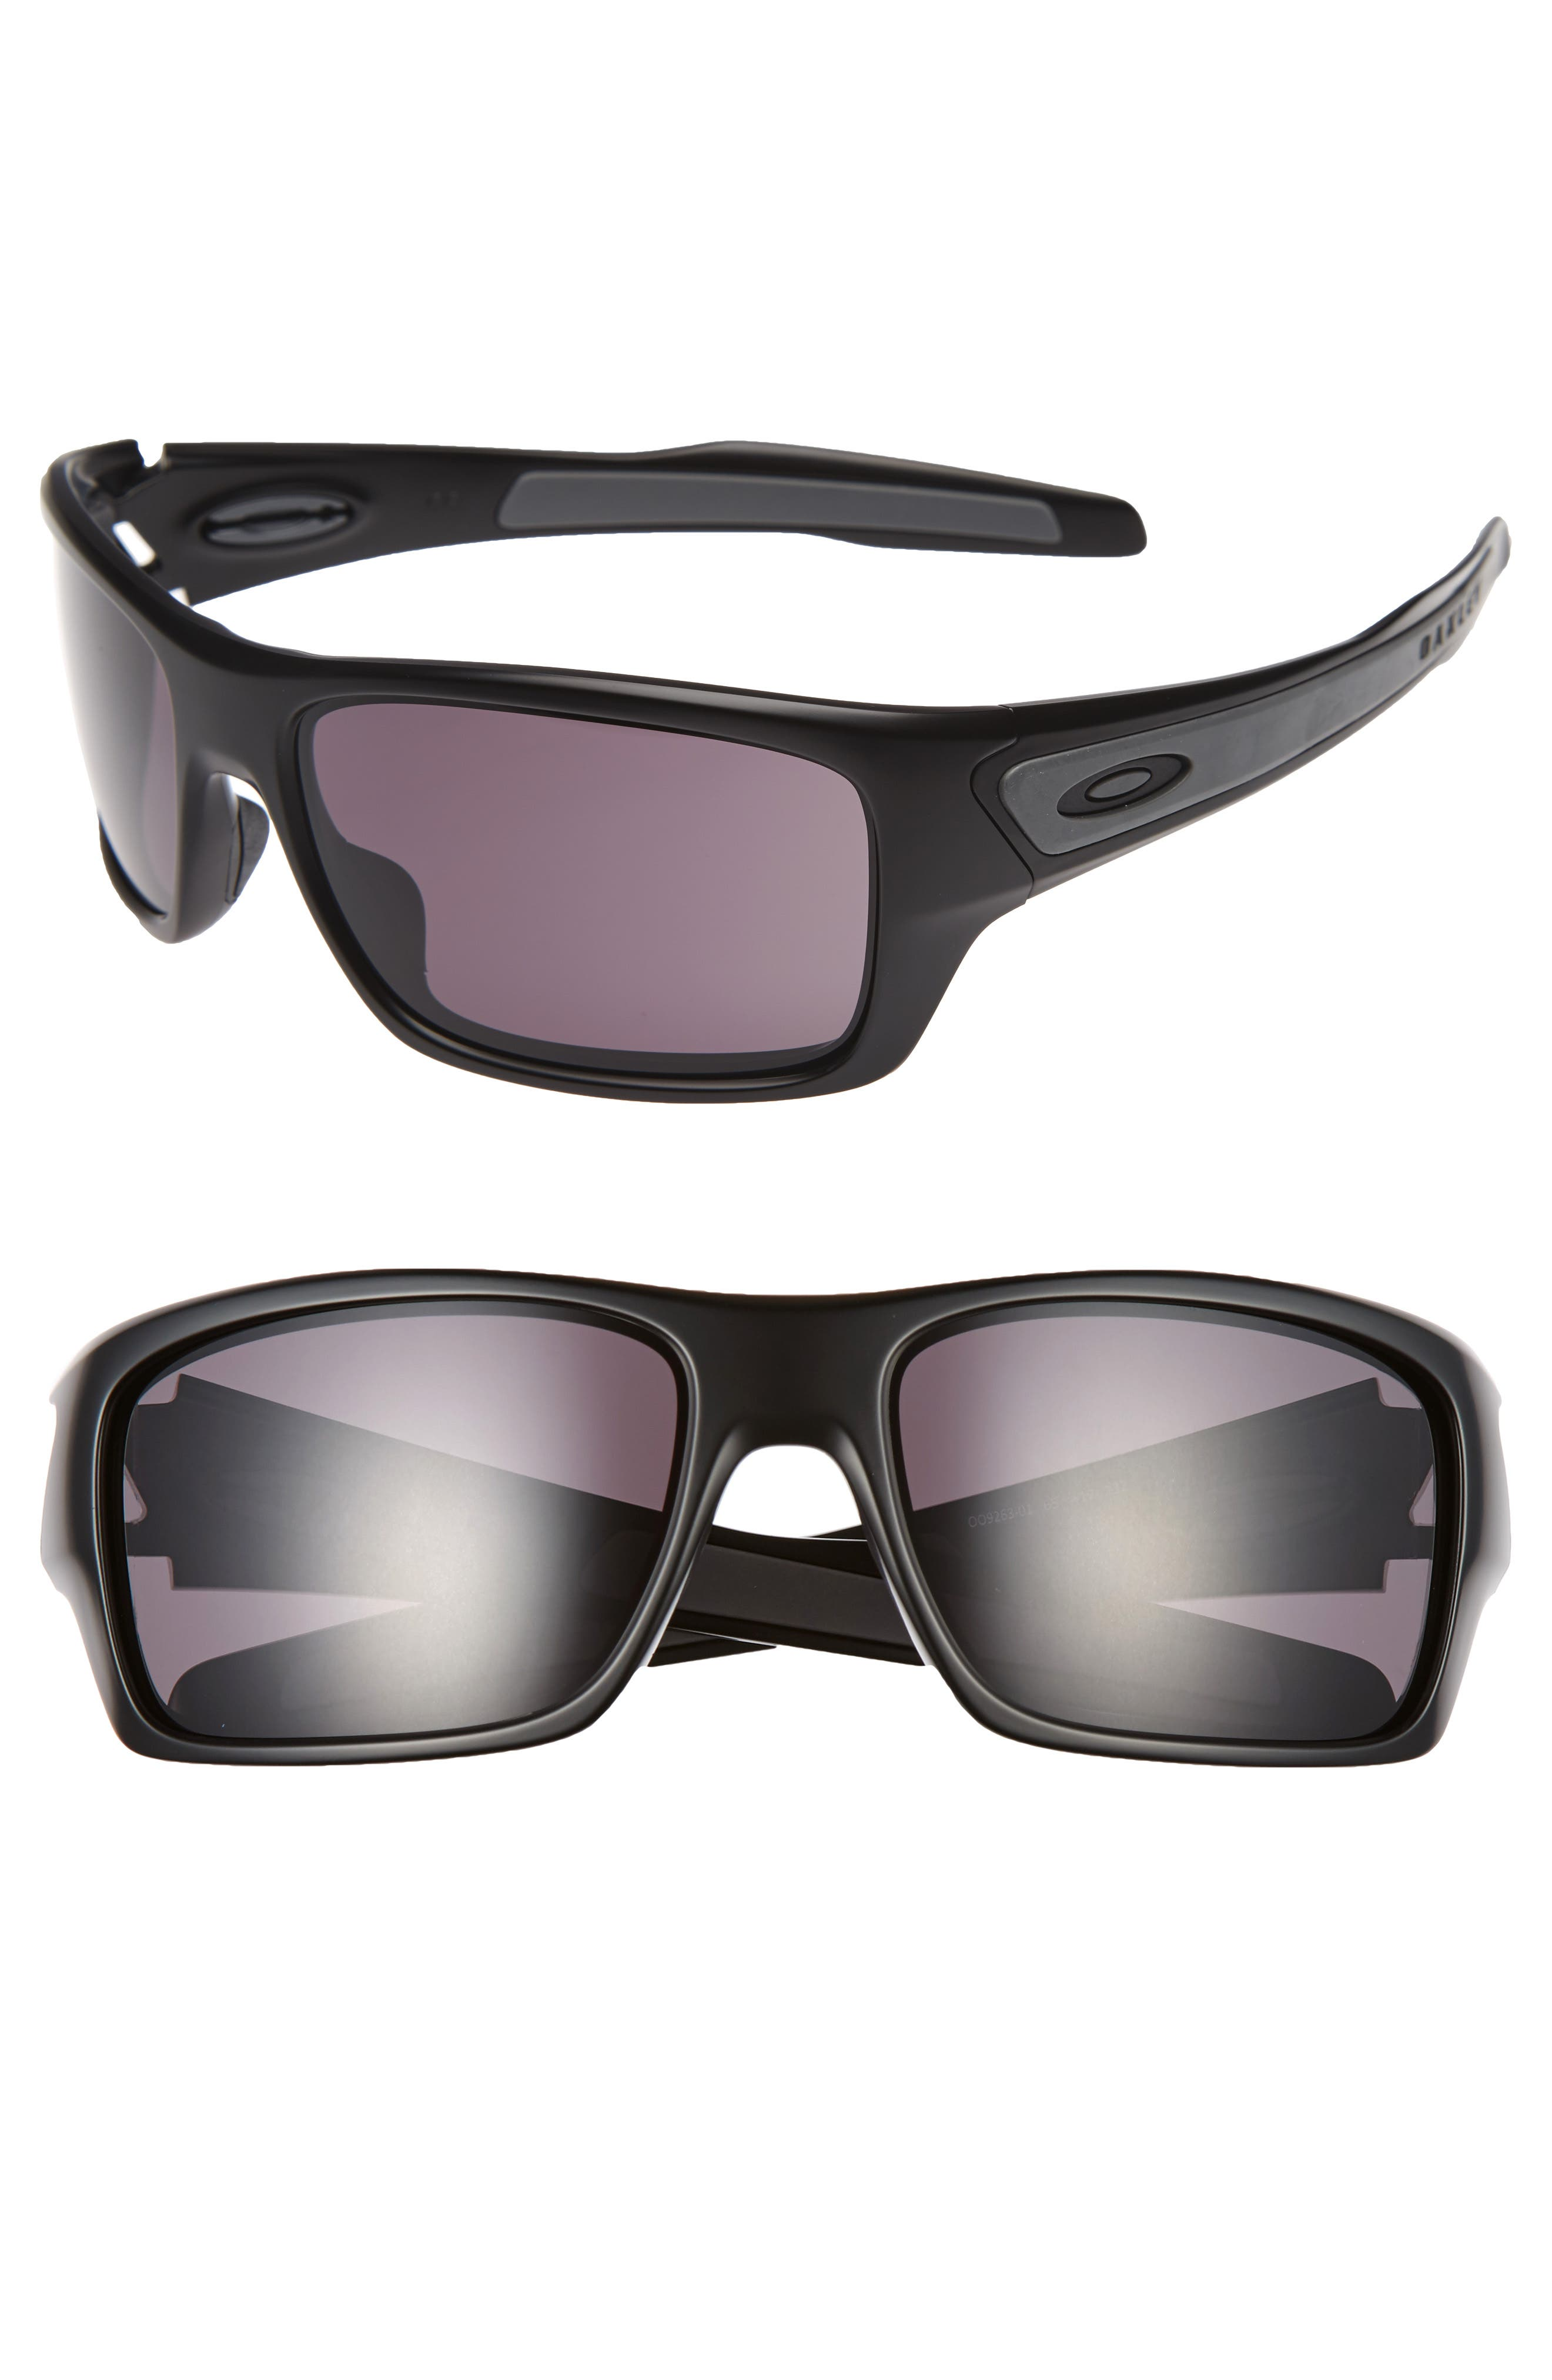 Oakley Turbine 65Mm Sunglasses -